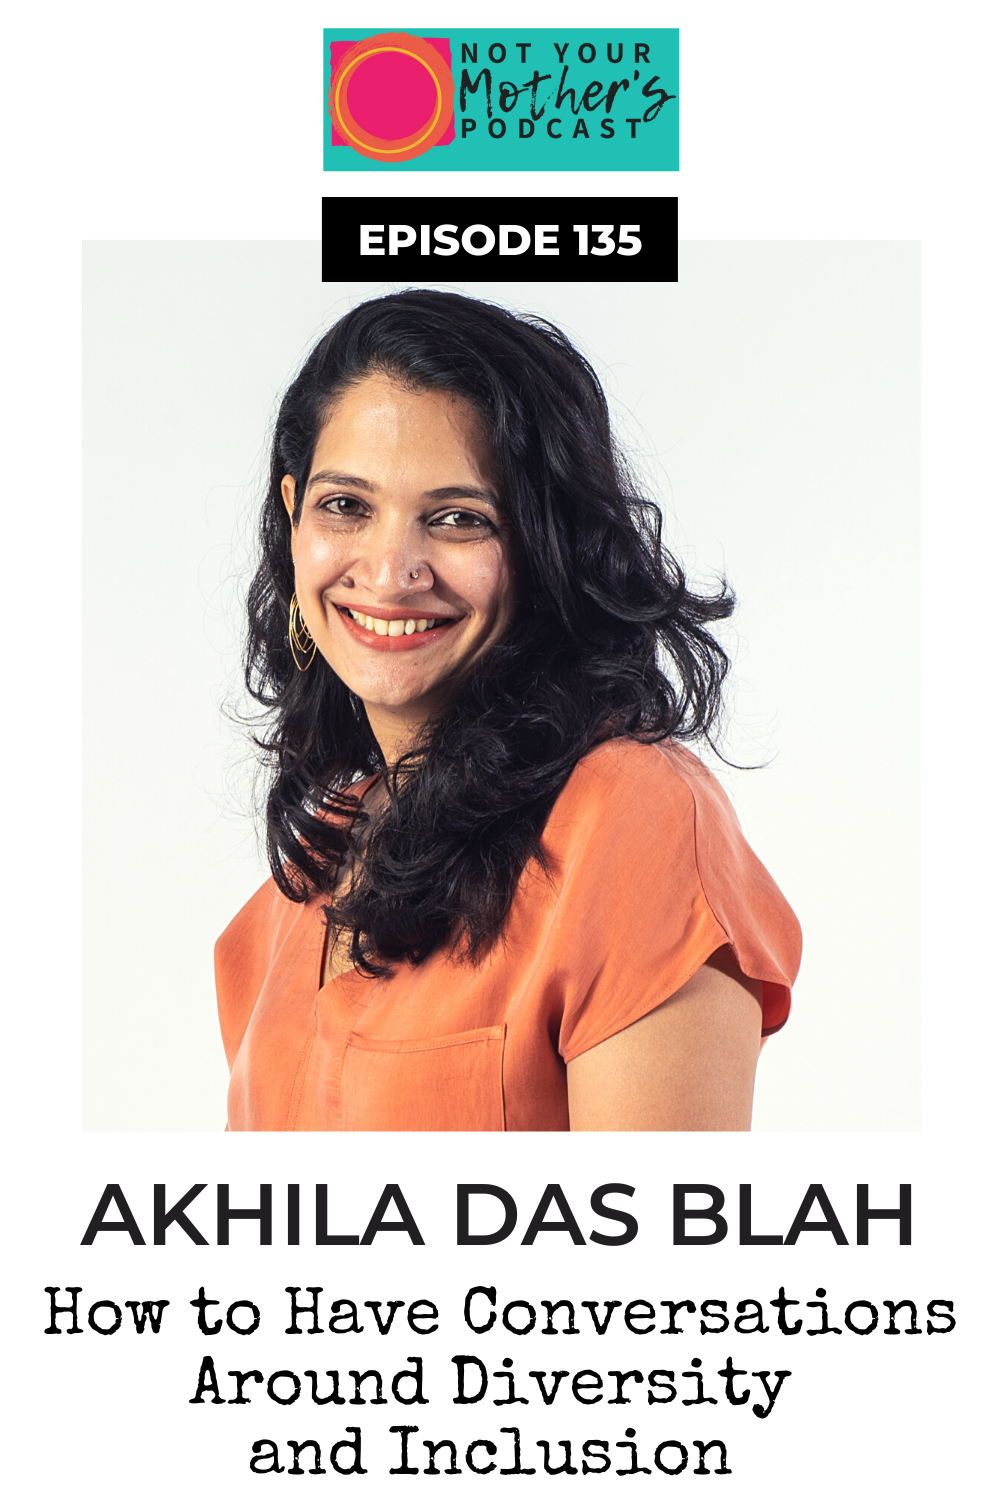 How to Have Conversations Around Diversity and Inclusion with Akhila Das Blah PIN